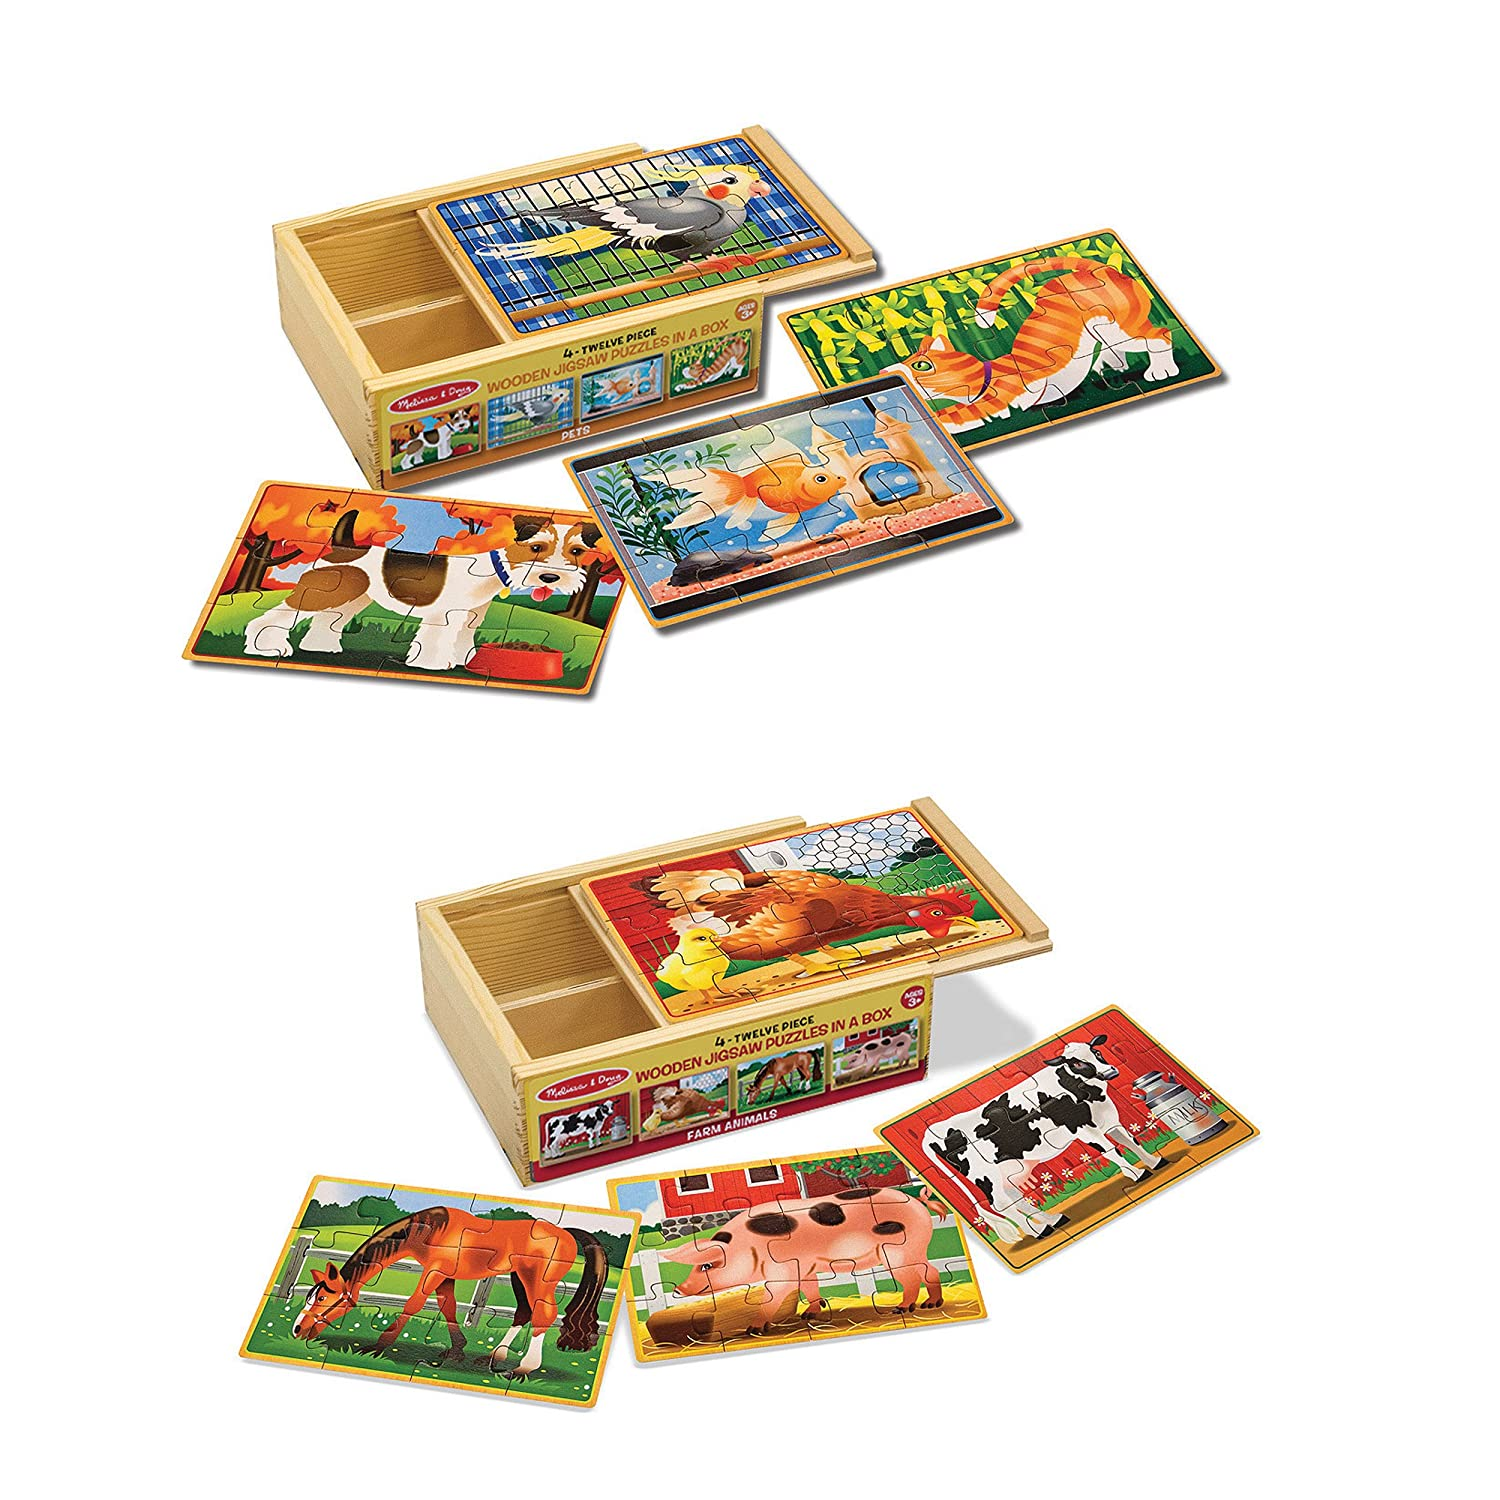 Melissa & Doug Pets 4-in-1 Wooden Jigsaw Puzzles in a Storage Box (48 pcs) 3790